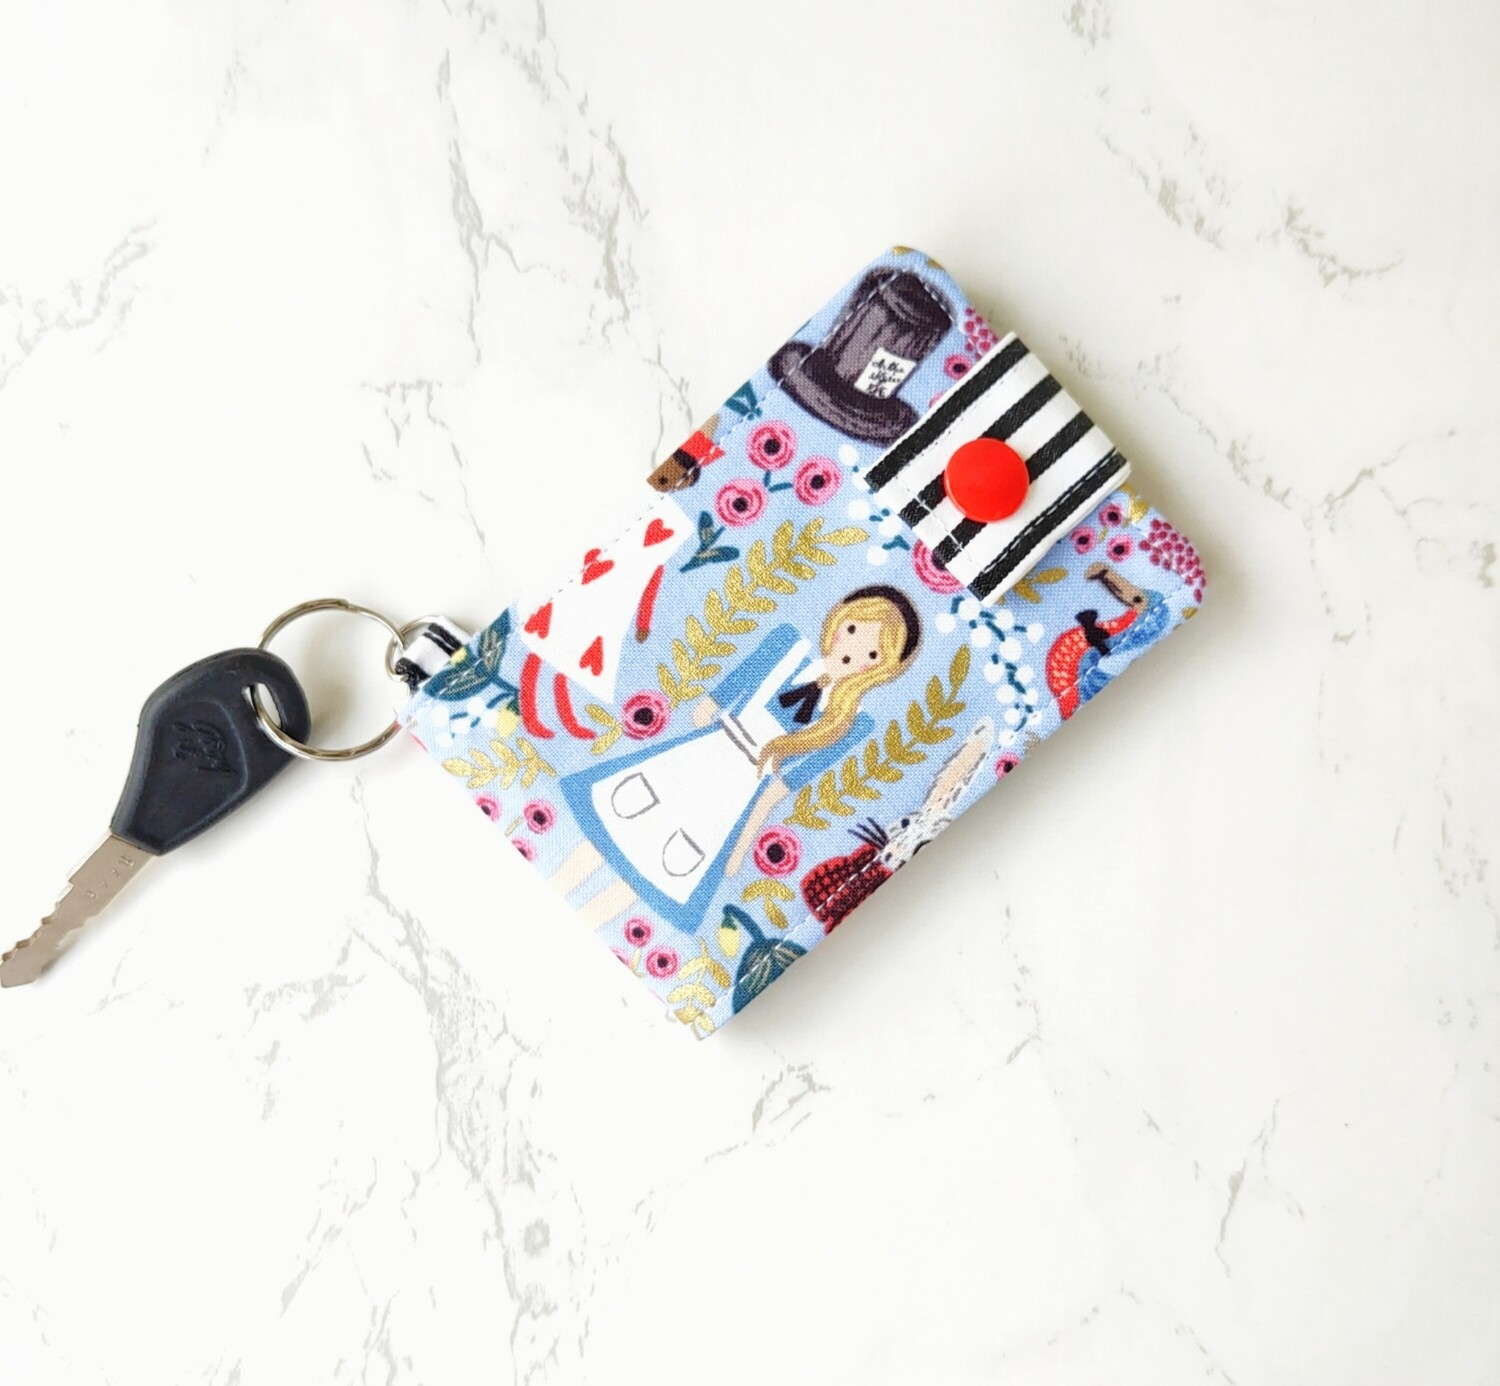 Alice Key and Card Holder Mini Wallet